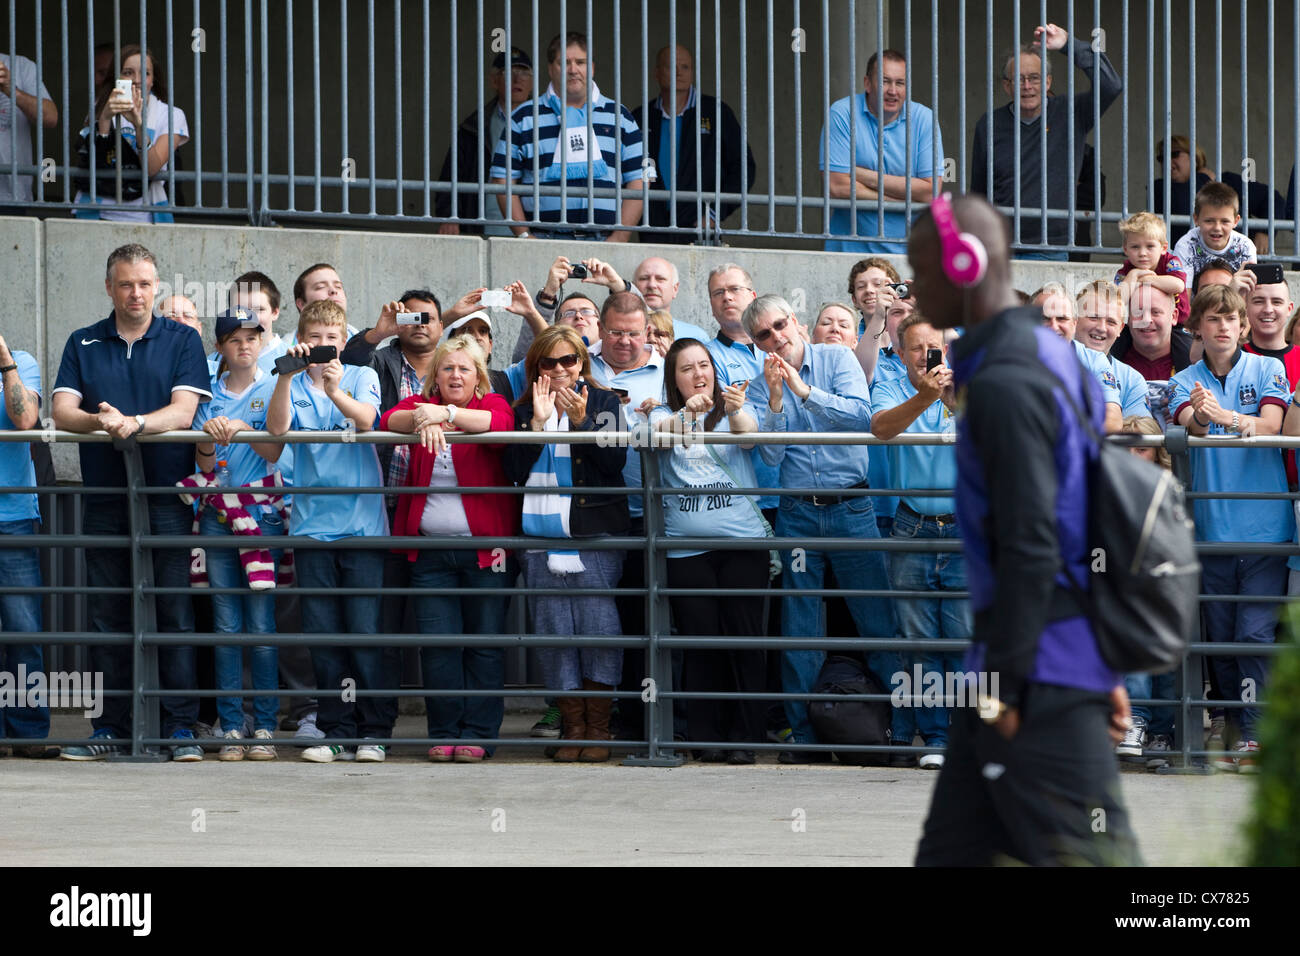 Mario Balotelli footballer arriving at the Etihad Stadium, Manchester City Football Club, Manchester, England, United - Stock Image